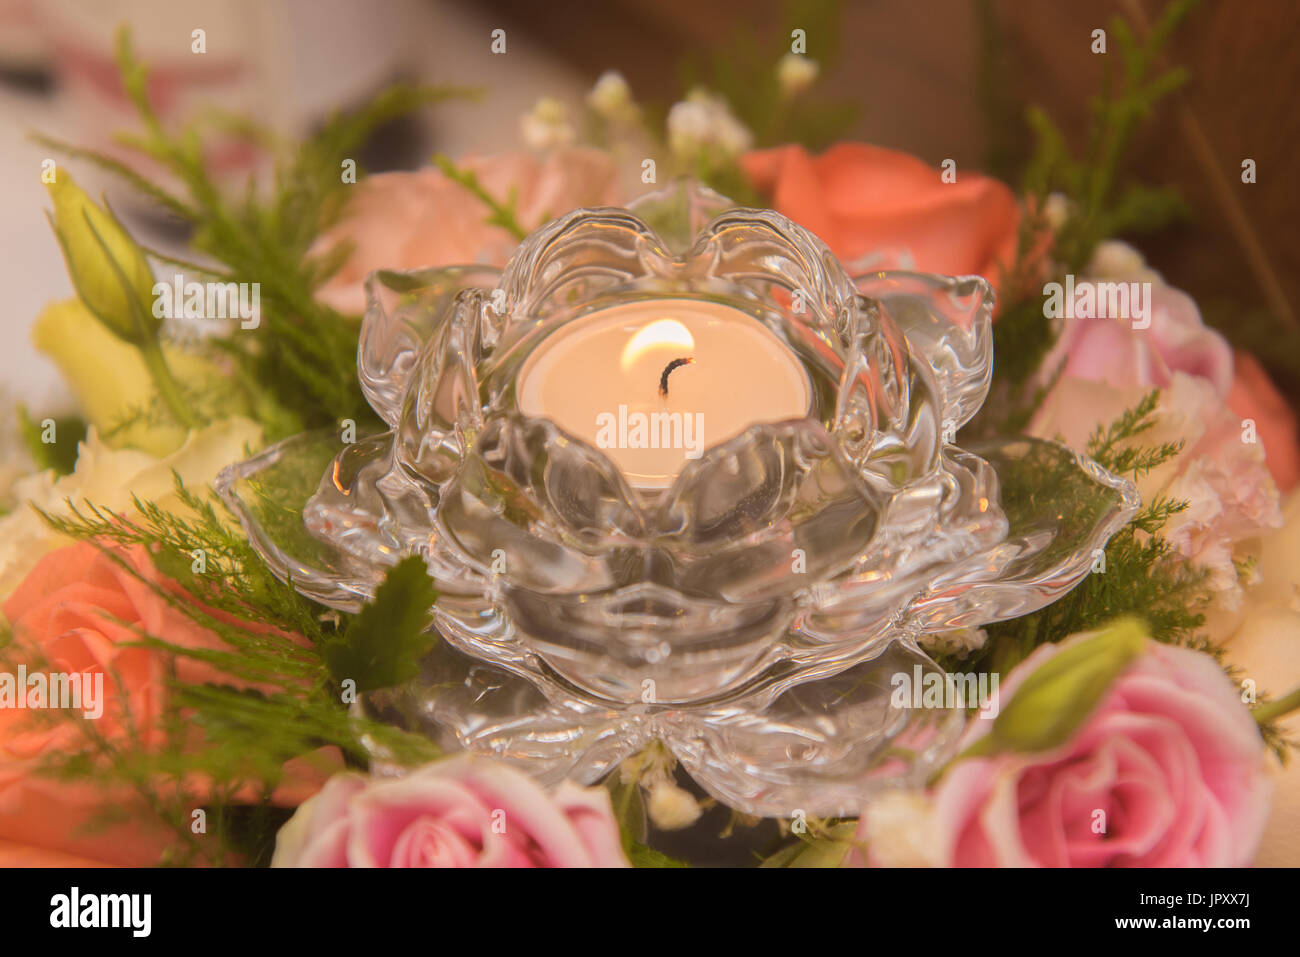 Flowers Candles Beautiful Use For Wedding Day Or Happy Birthday Etc